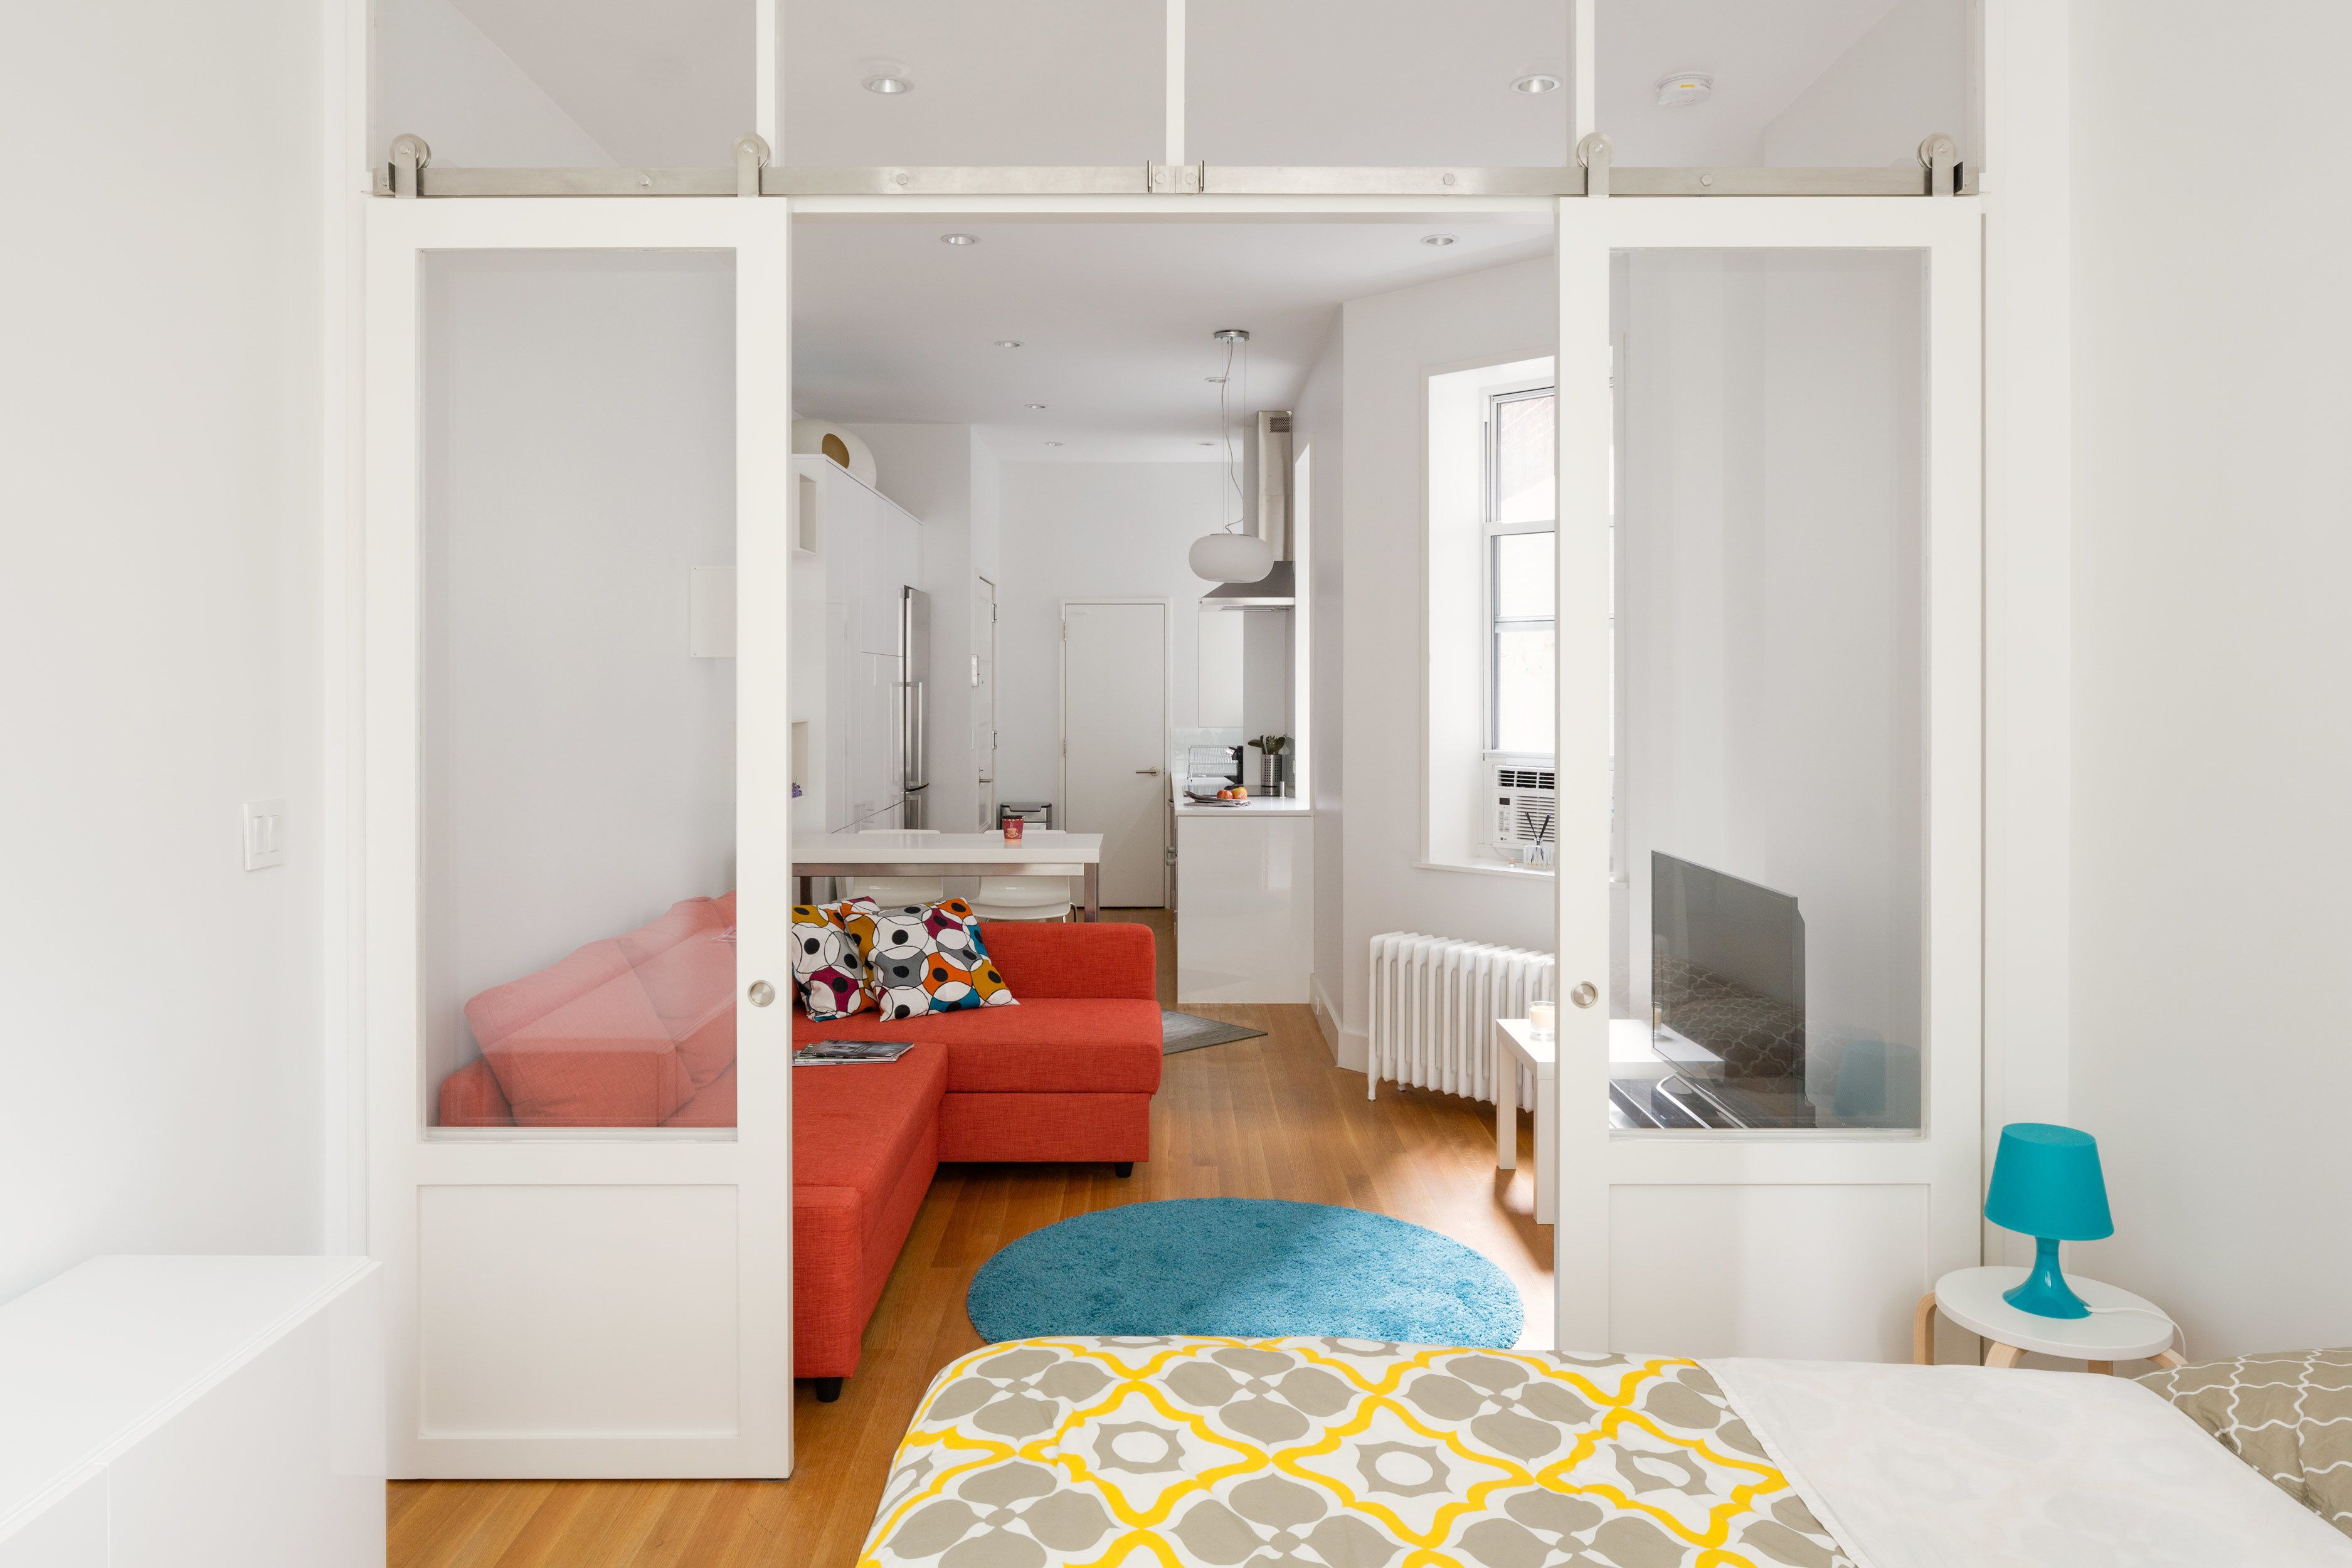 This 390 Square Foot Renovation Is pact Yet fortable in